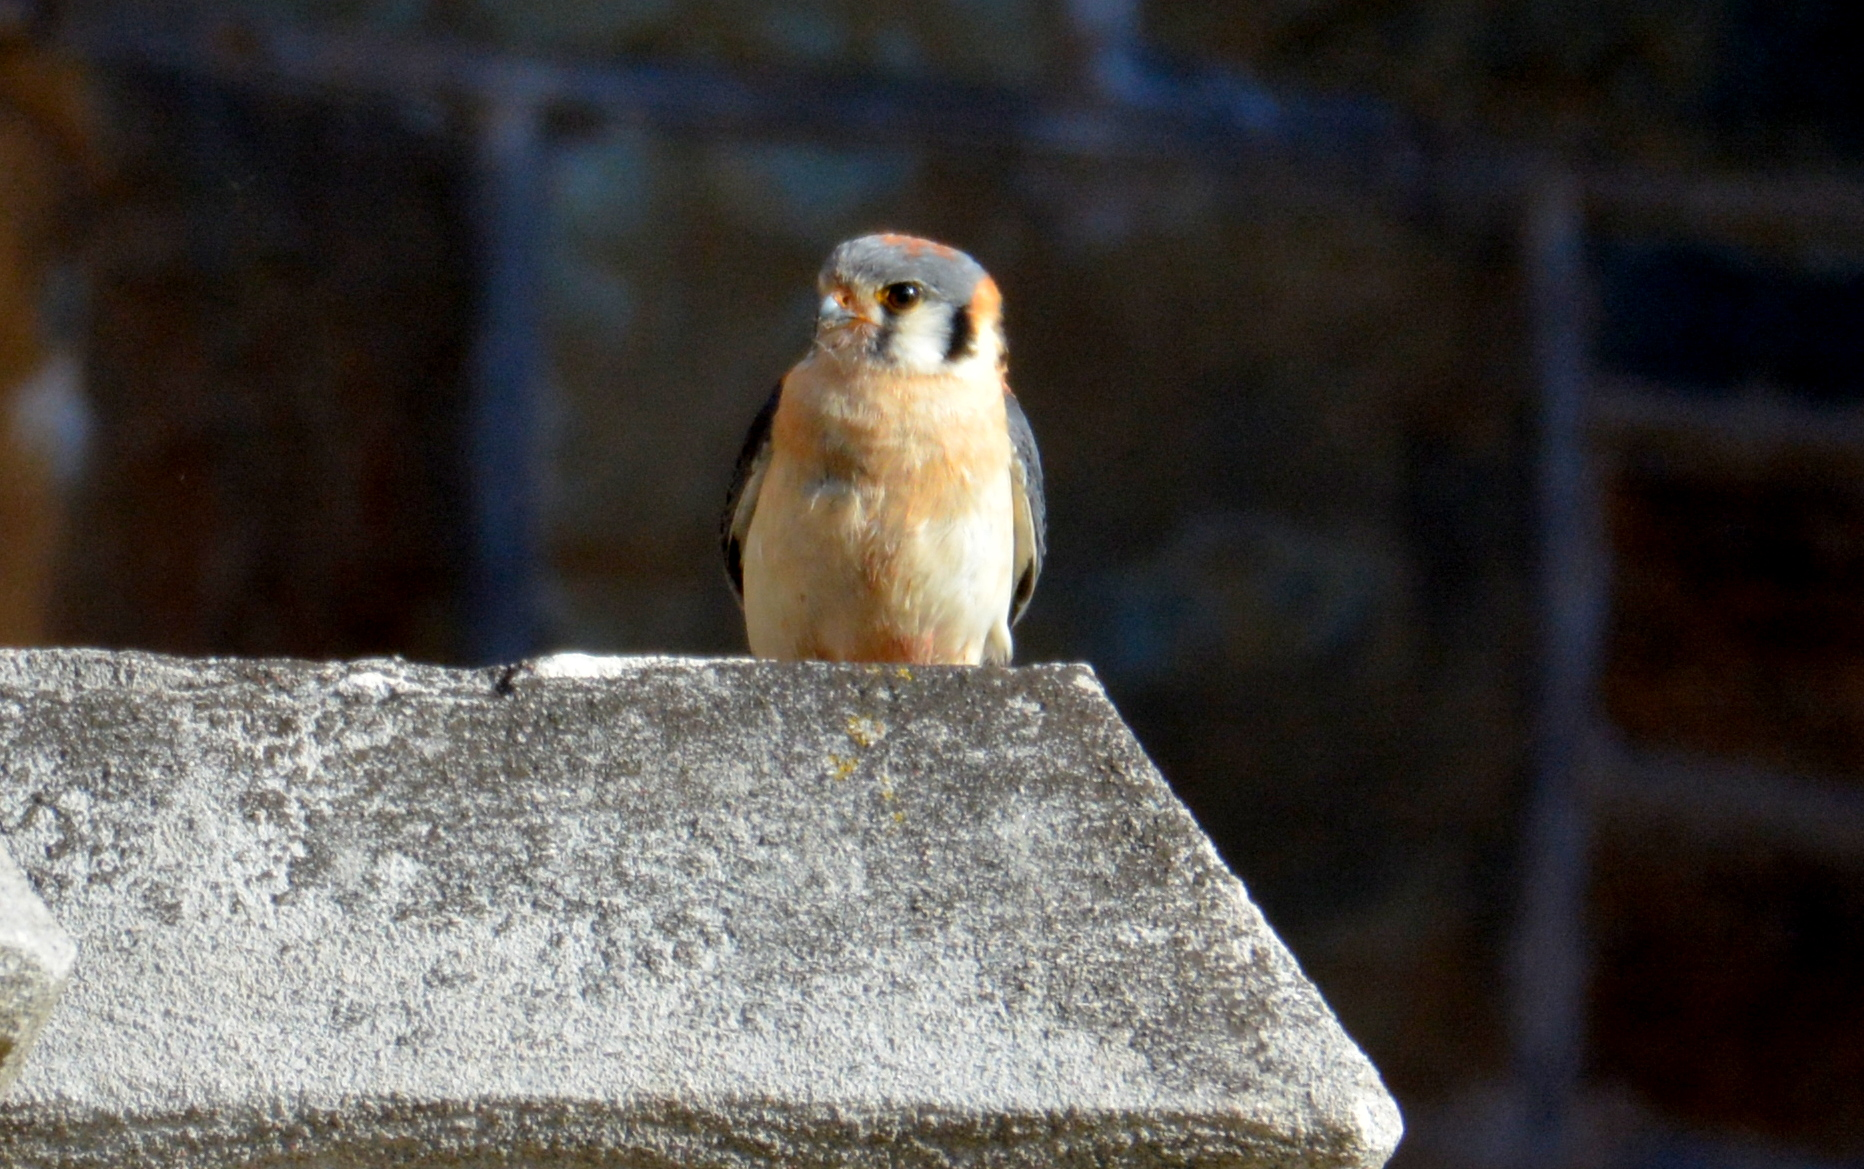 A male American Kestrel came into the canyon and perched on the church not far from our Fledge Watch post